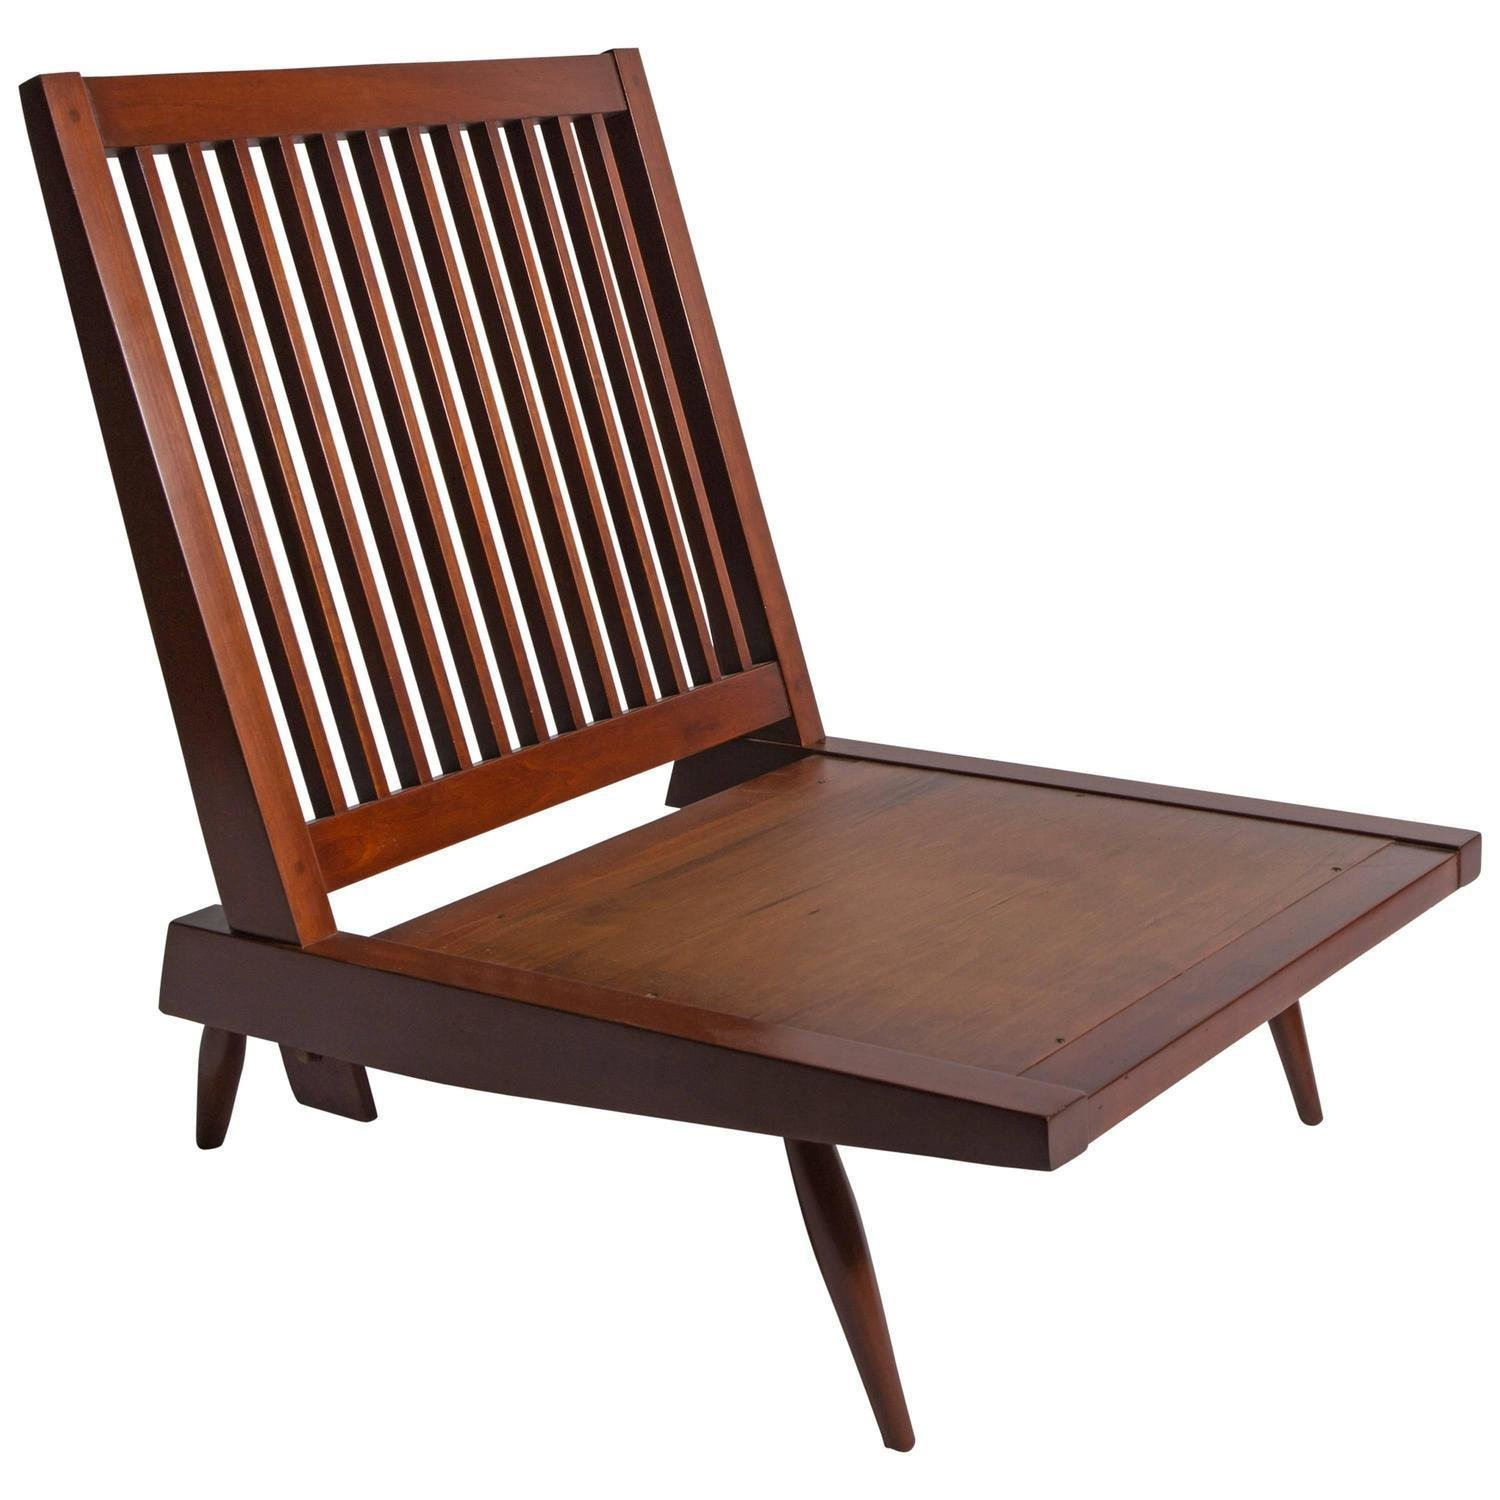 George Nakashima Studios walnut lounge chair from the mid-1950s.  Photo: reGeneration.  lounge chairs by pulltab